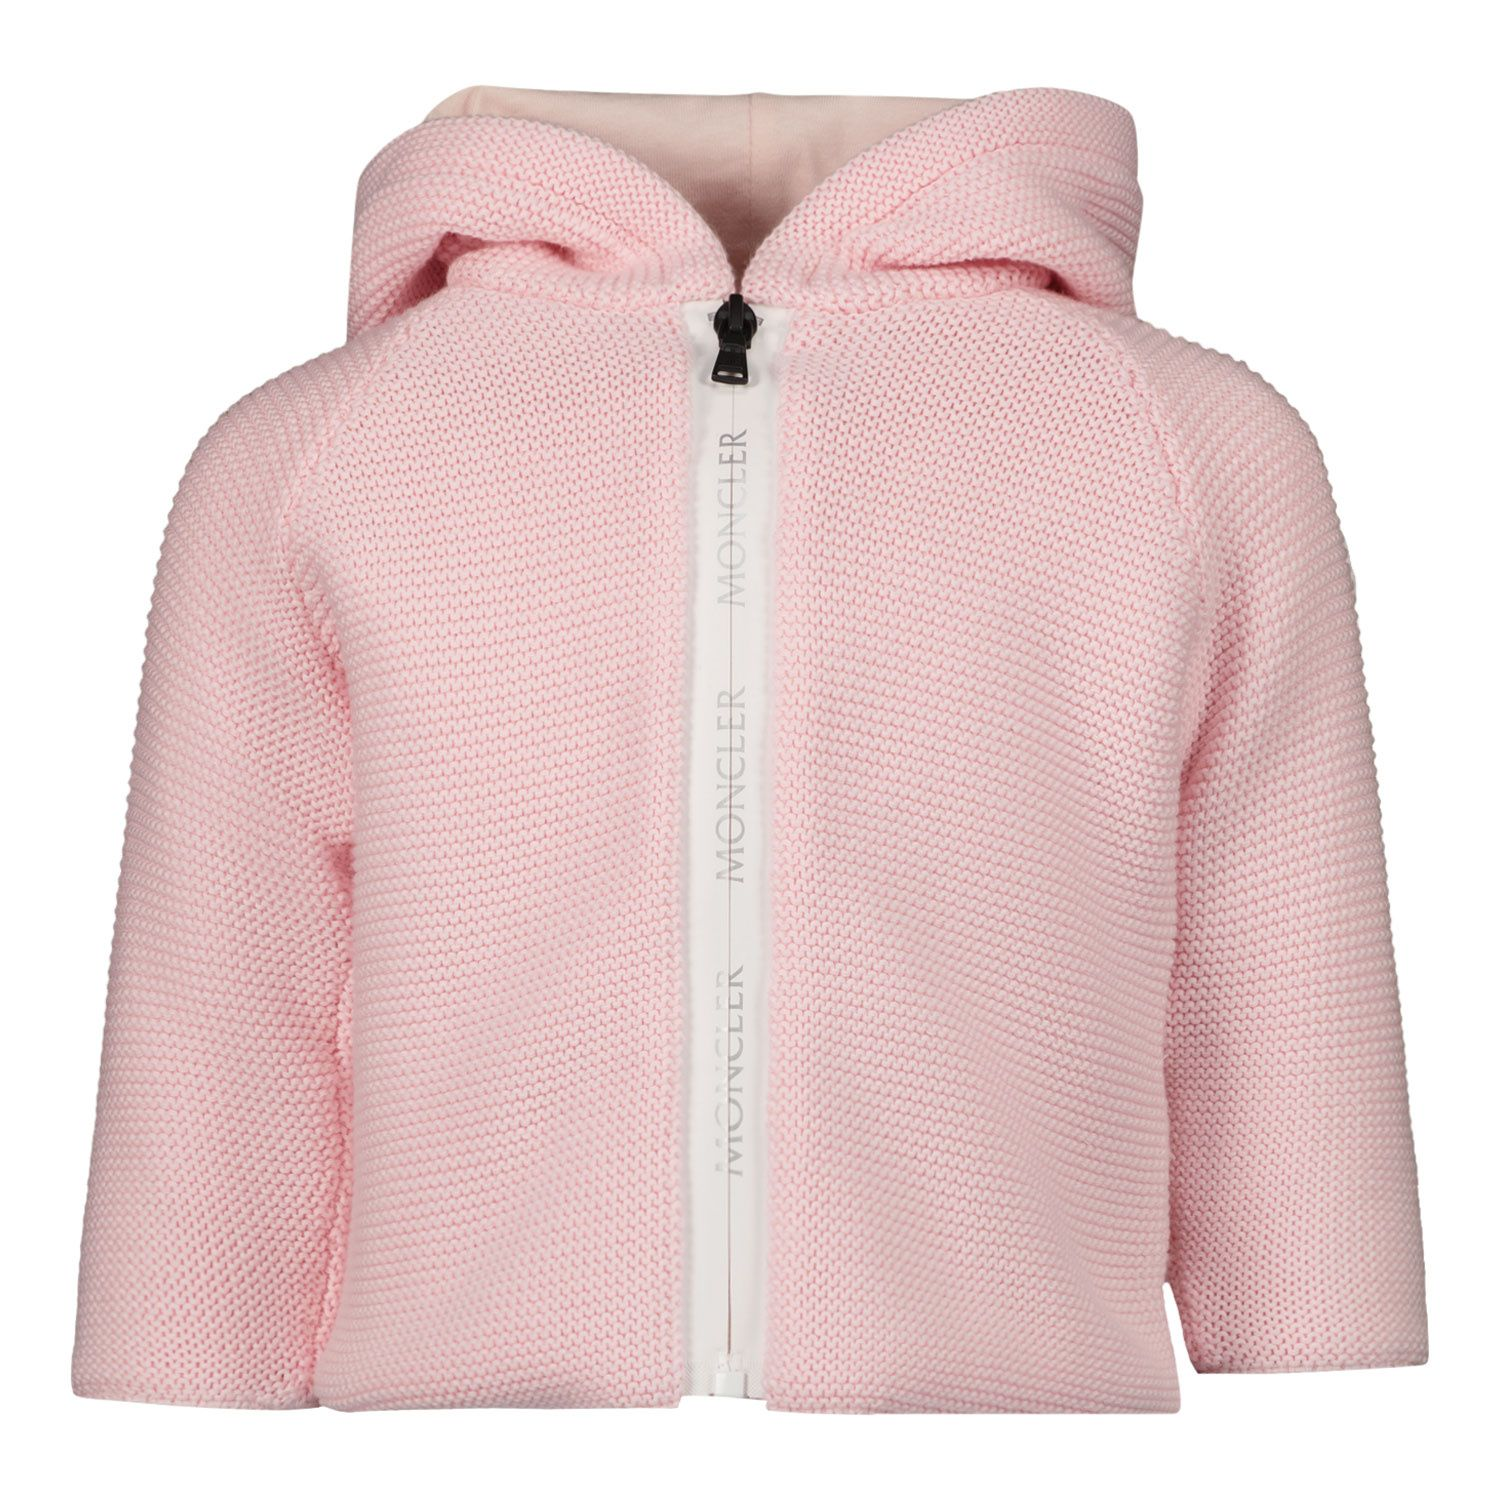 Picture of Moncler 9B70500 baby vest light pink